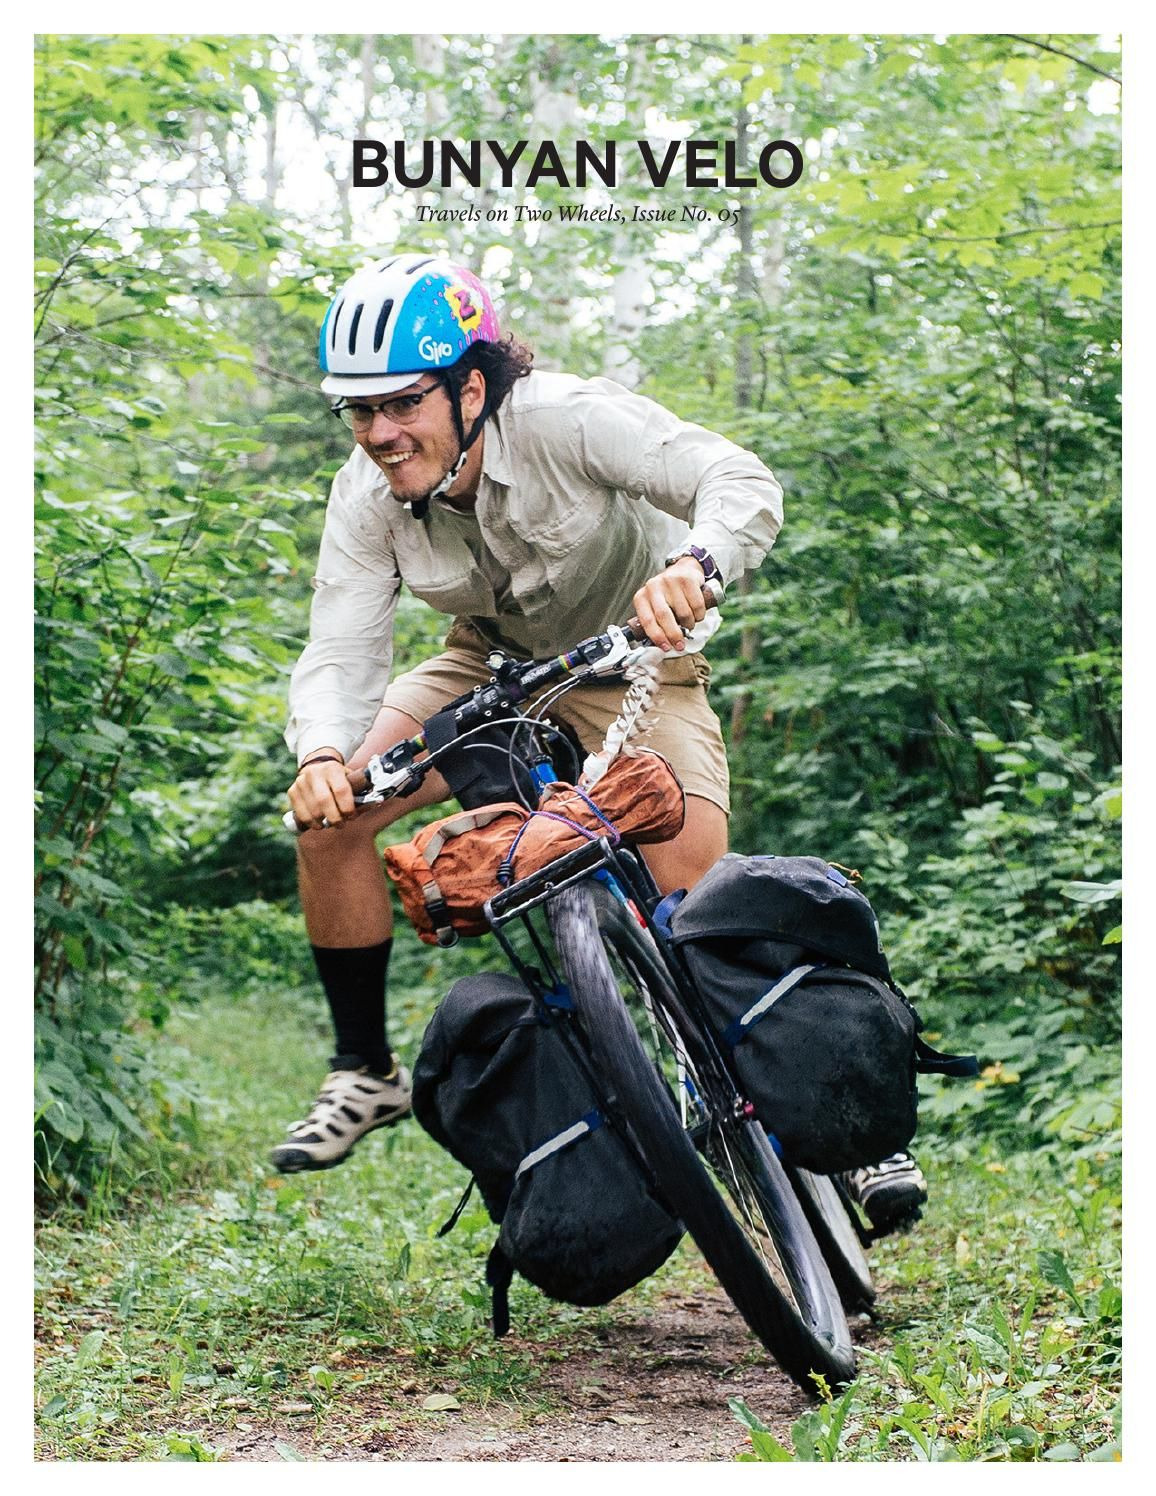 Bunyan Velo is a quarterly collection of photographs, essays, and stories celebrating the simple pleasures of traveling by bicycle.